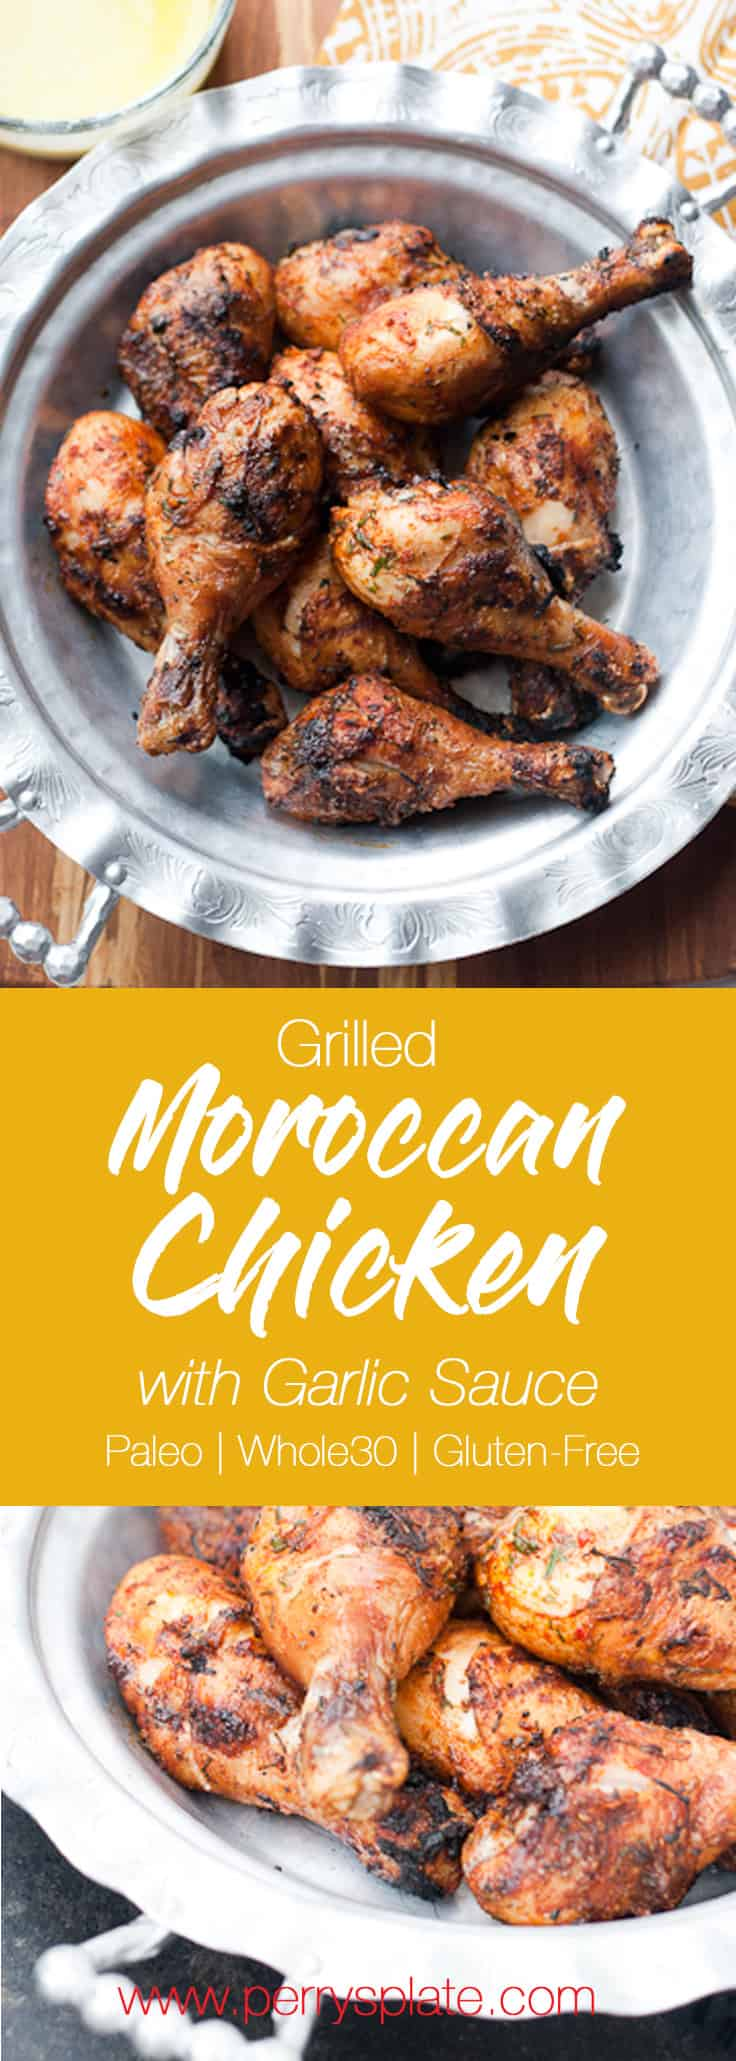 This grilled Moroccan chicken has the best and EASIEST marinade! Don't forget to make the garlic sauce. It totally makes this meal spectacular! | grilled chicken recipes | perrysplate.com